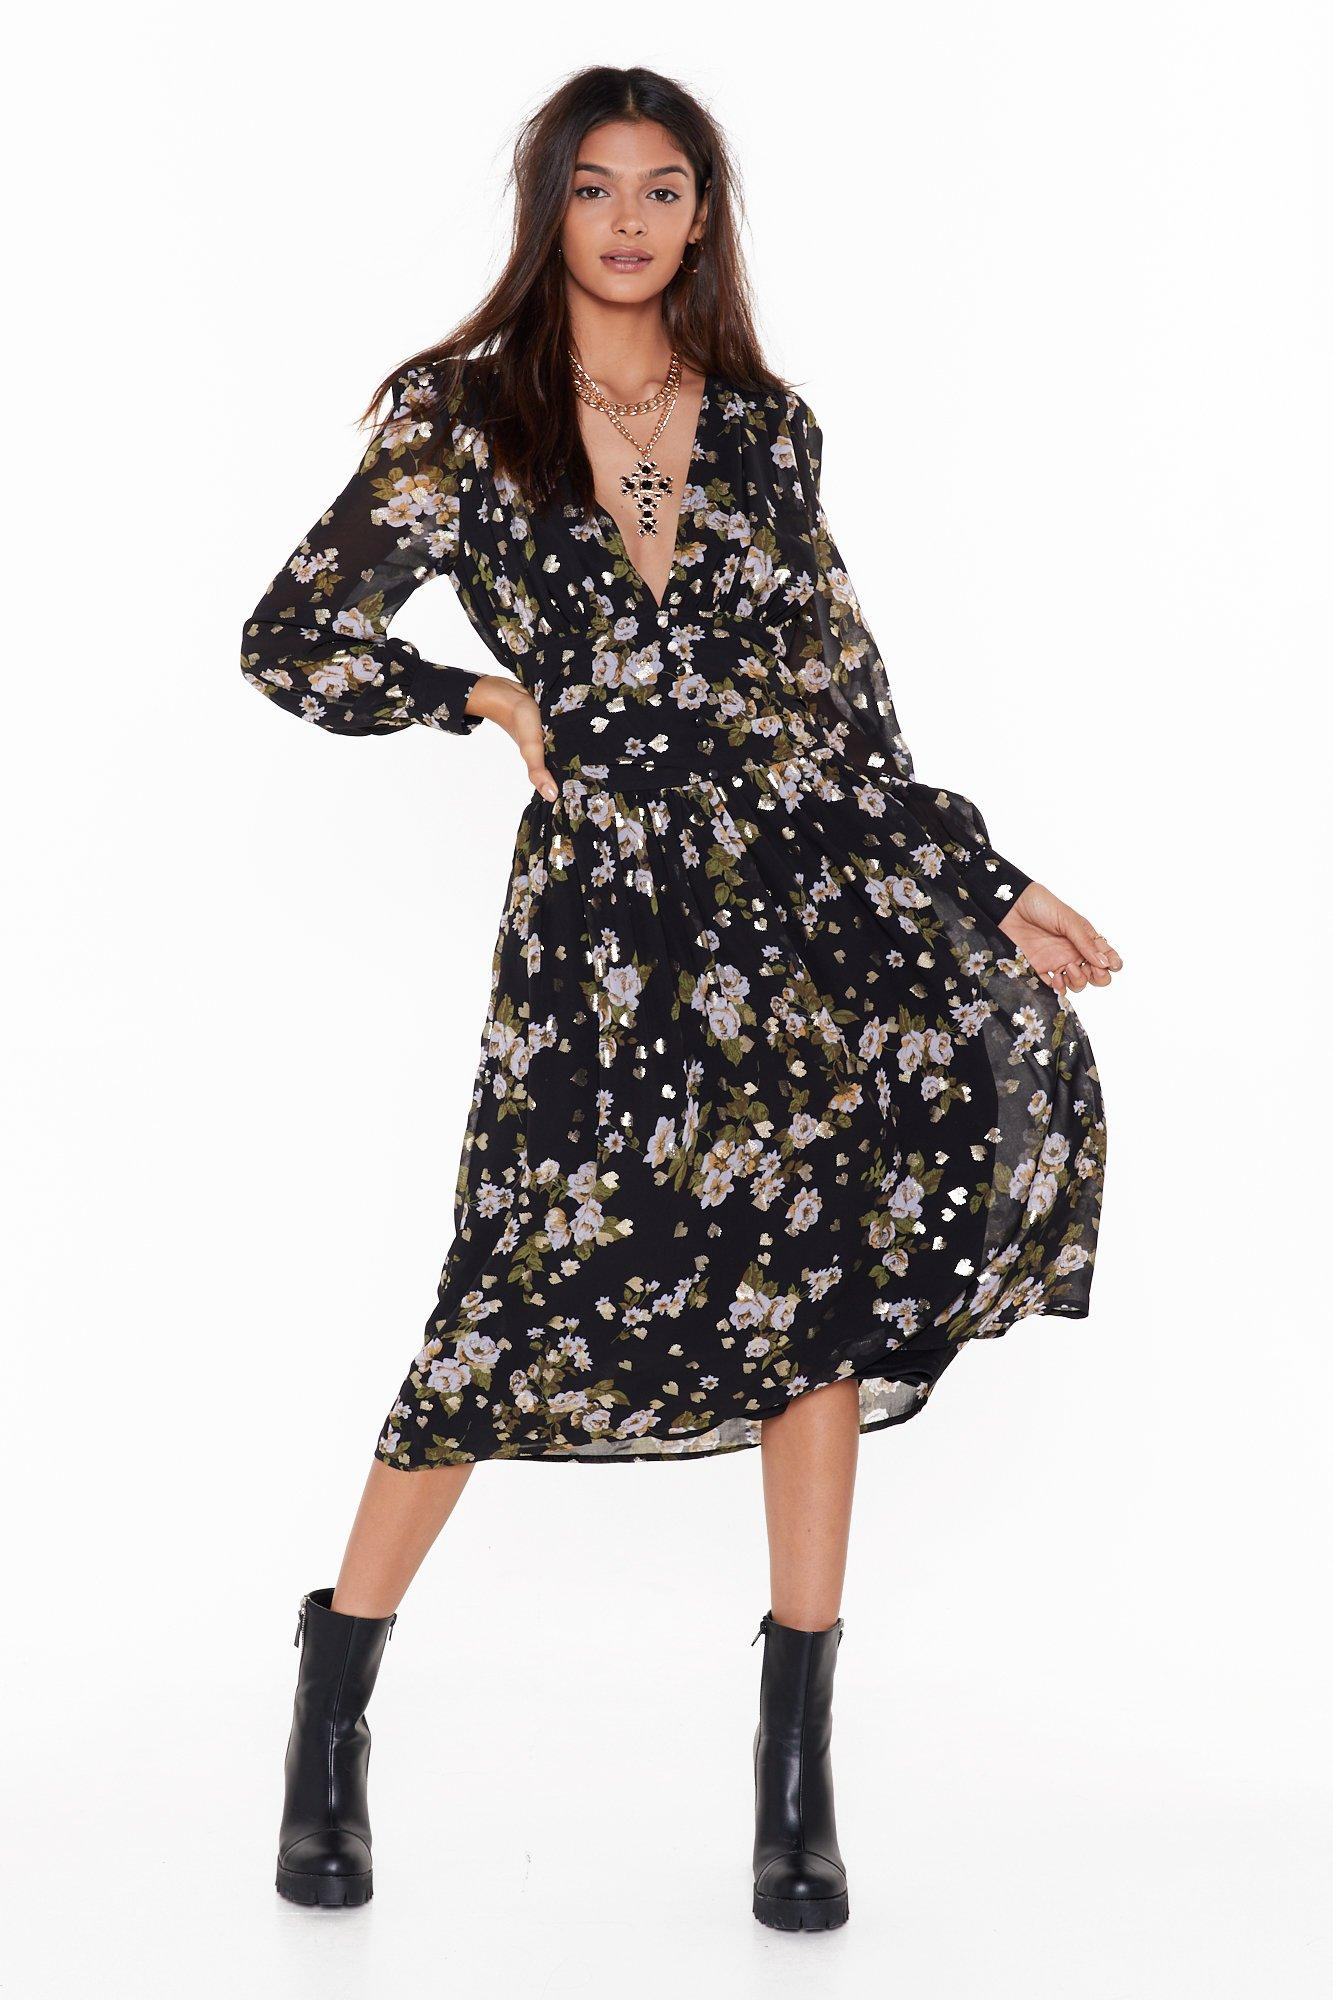 Image of What They Don't Grow Floral Midi Dress